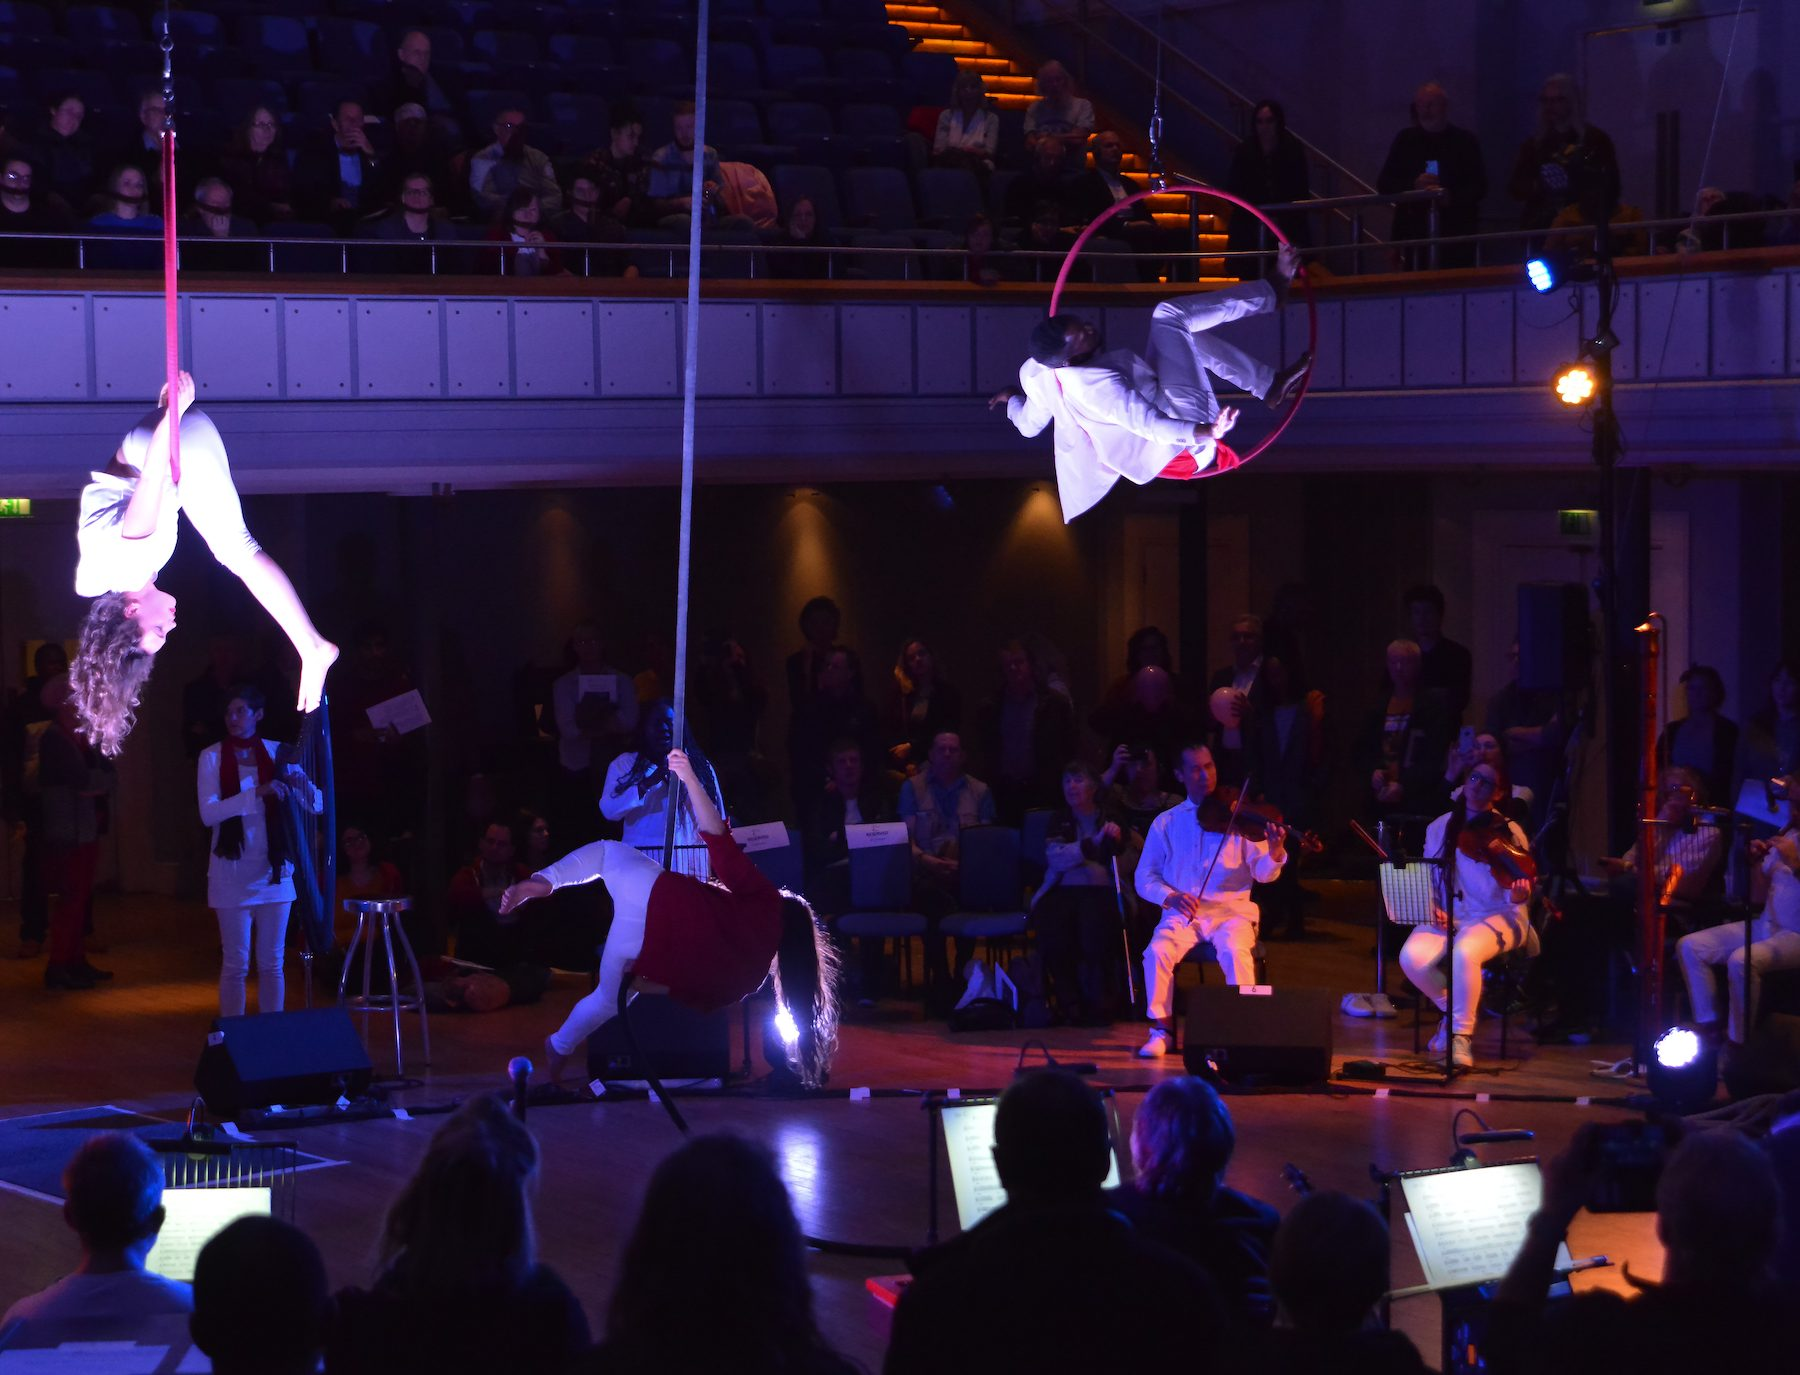 Wide shot of Birmingham Town Hall, the musicians seated in a large circle around the room, creating a centre stage for the aerial artists. One girl suspended upside down in a red hoop, another man perches with his legs high, sat in another red hoop. A second girl is flowing down a rope, also suspended from the ceiling